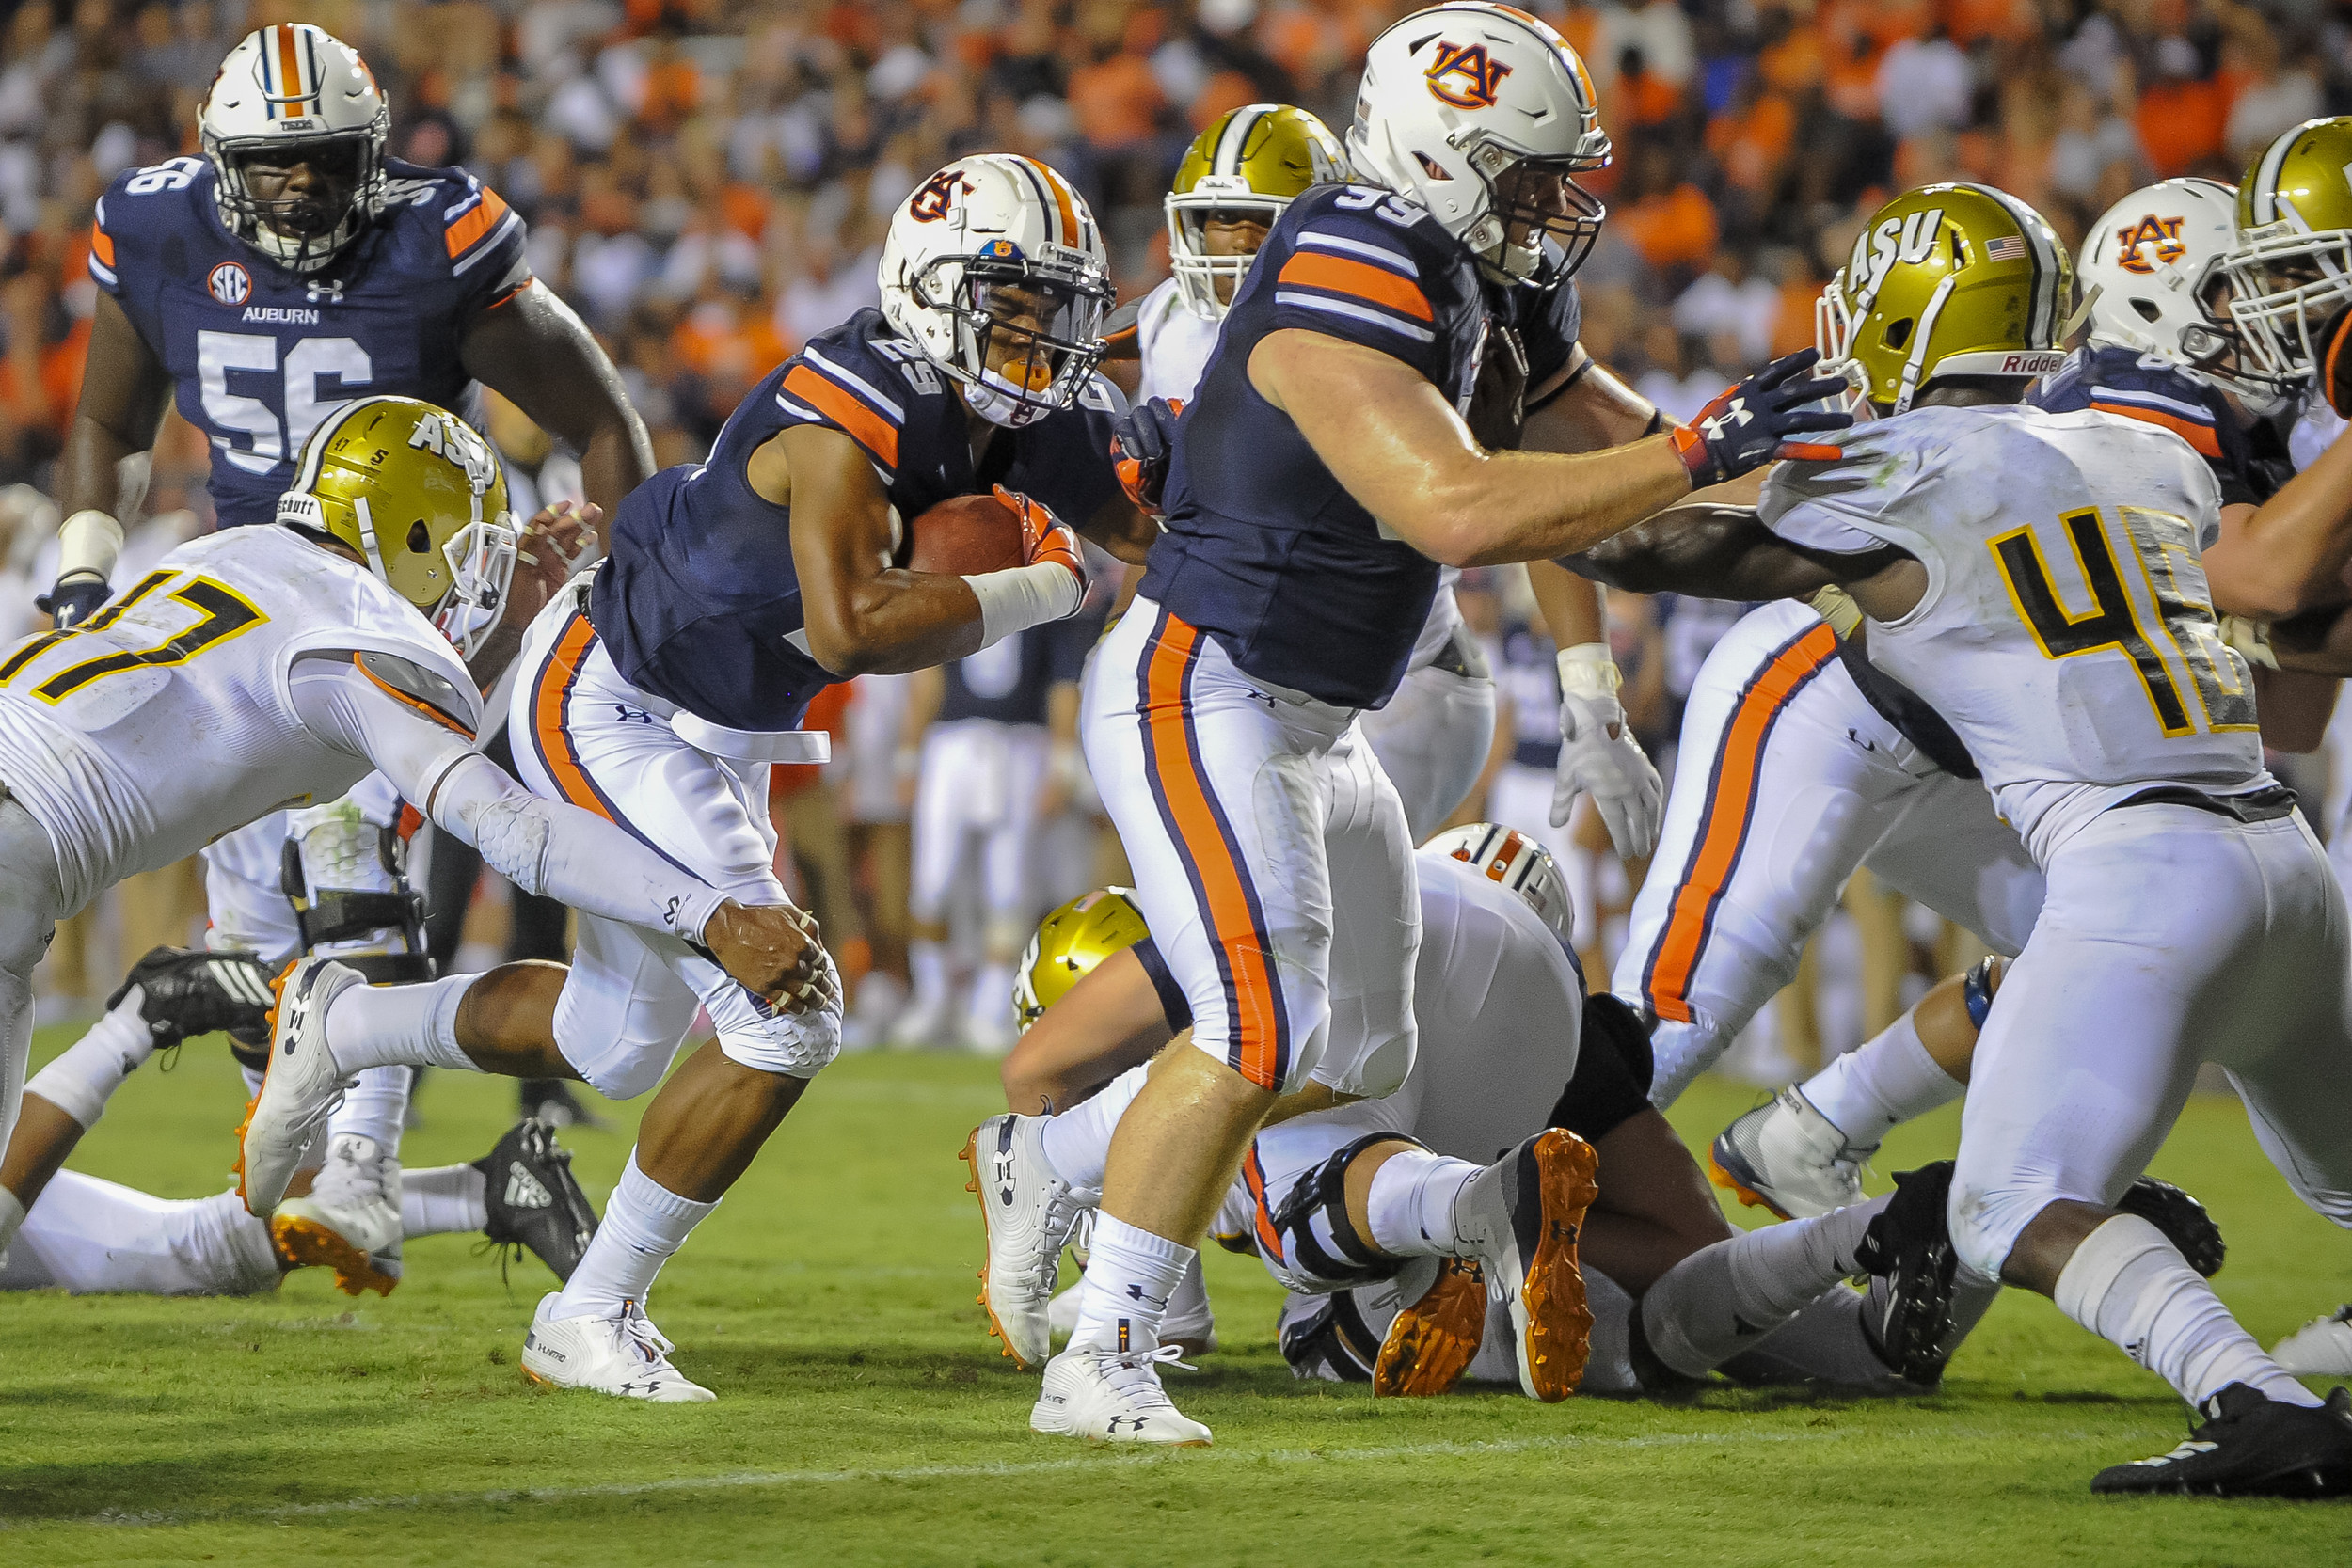 Auburn Tigers running back Harold Joiner (29) scores a touchdown behind the blocking of fullback Spencer Nigh (99) during the second half of Saturday's game, at Jordan Hare Stadium in Auburn Atlanta. (Contributed by Jeff Johnsey)